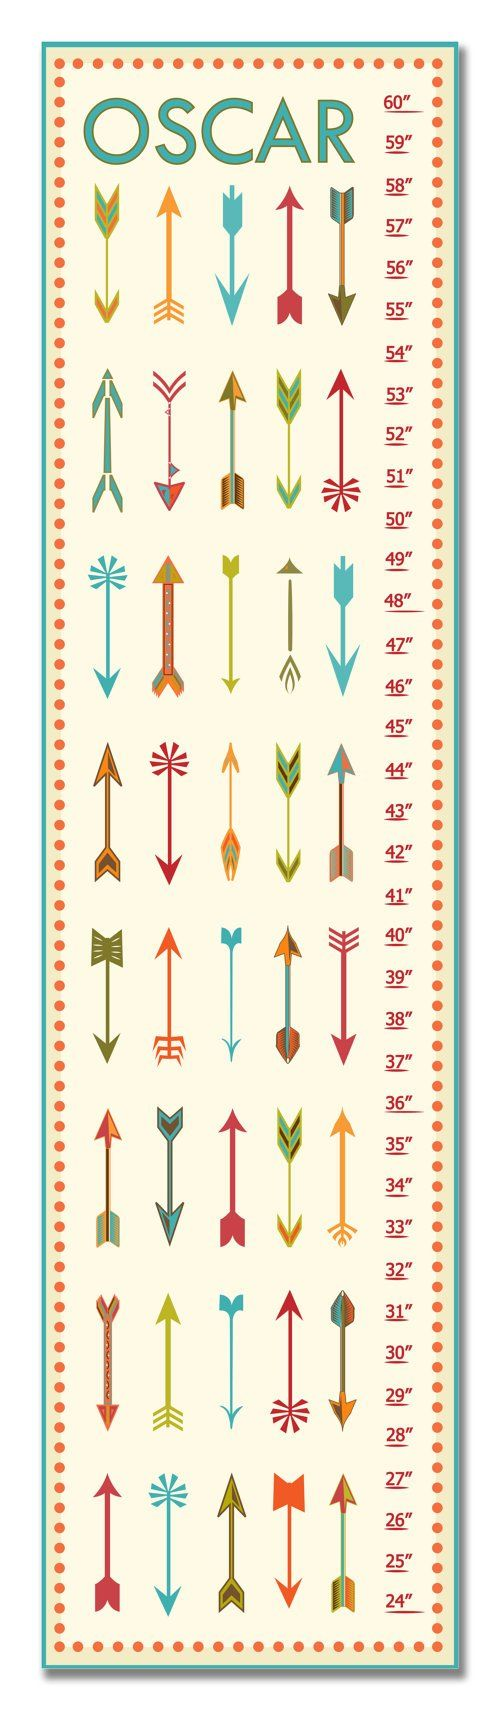 Growth chart for babies calculator gallery free any chart examples online growth chart calculator images free any chart examples best 25 child growth chart ideas on nvjuhfo Image collections